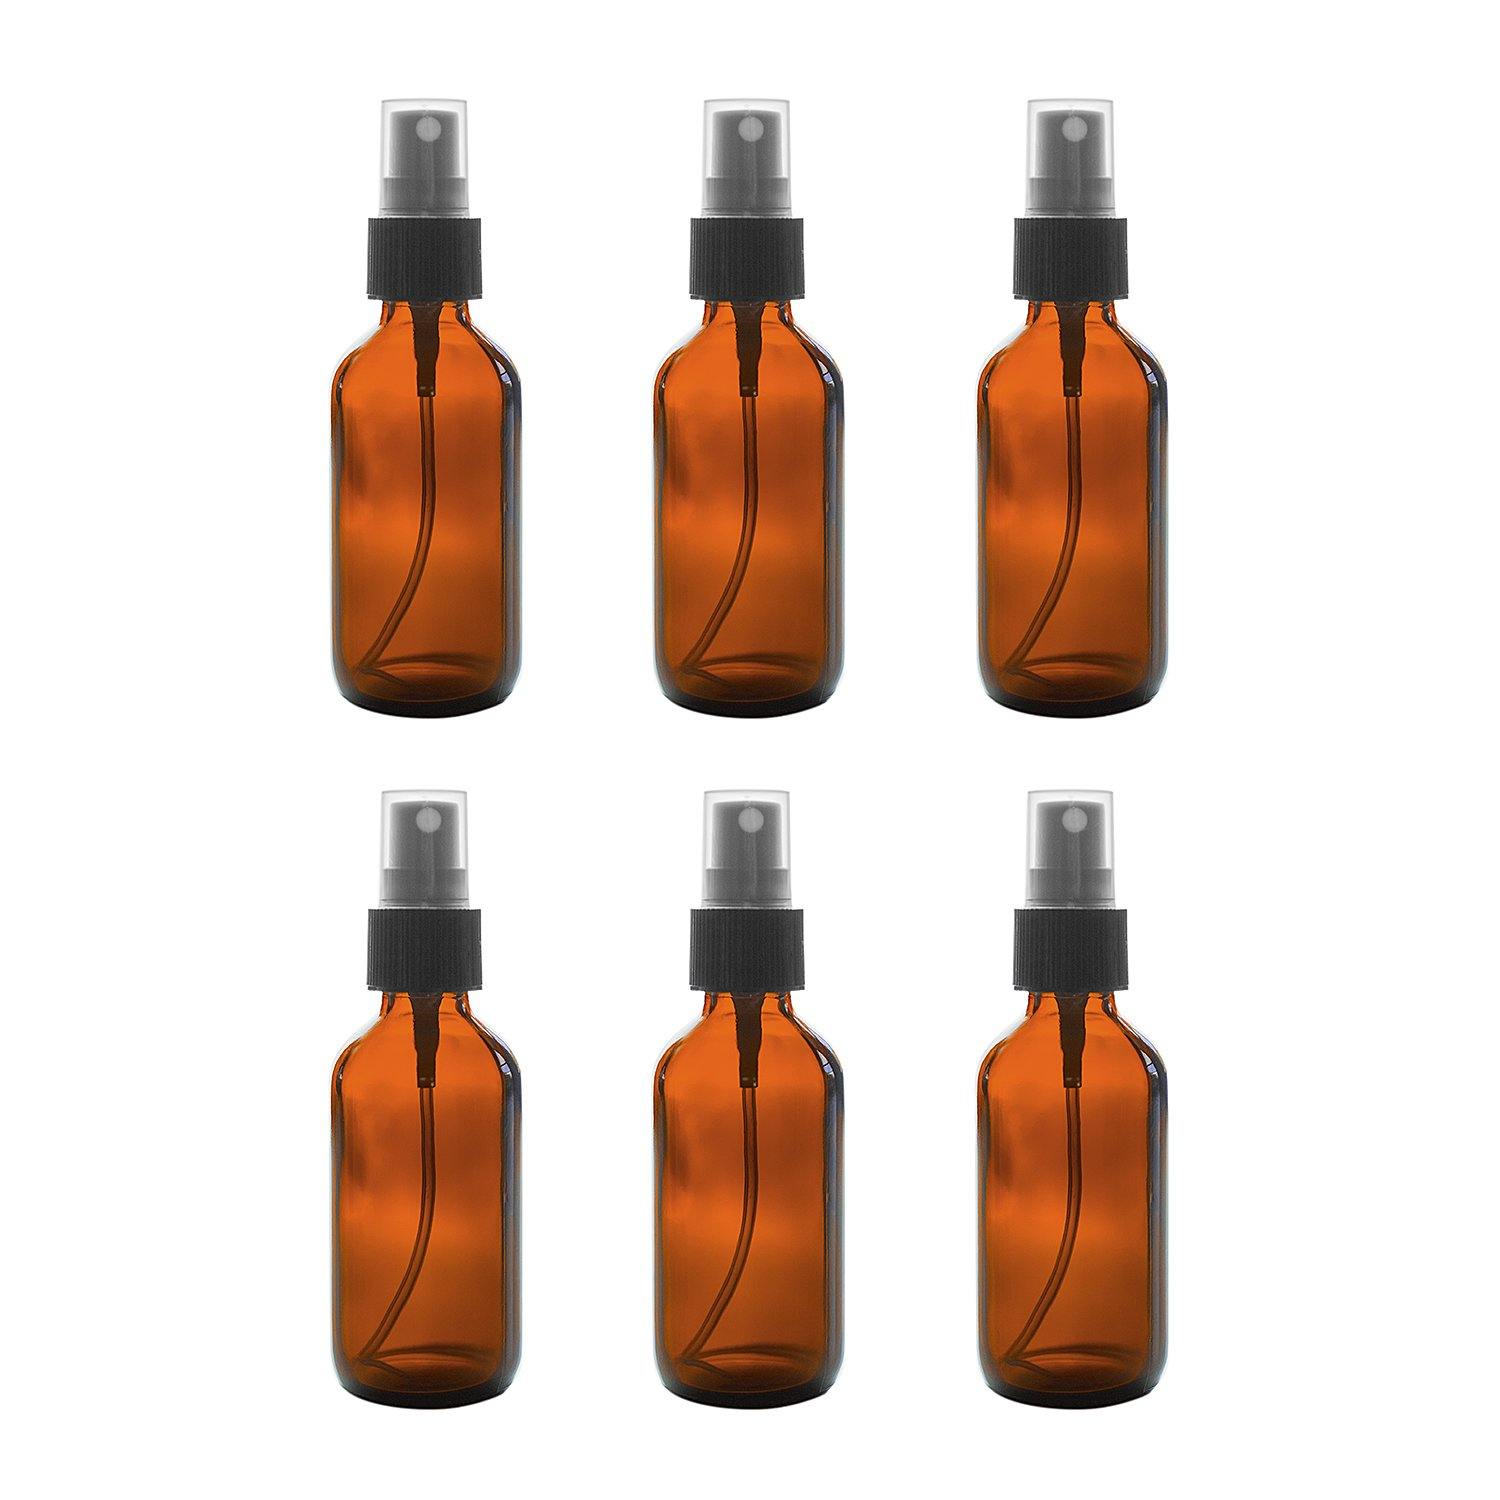 2 oz Amber Boston Round Glass Bottle with Fine Mist Sprayer Dispenser for Essential Oils, Chemistry Lab Chemicals, Colognes & Perfumes (6 Pack): Industrial & Scientific